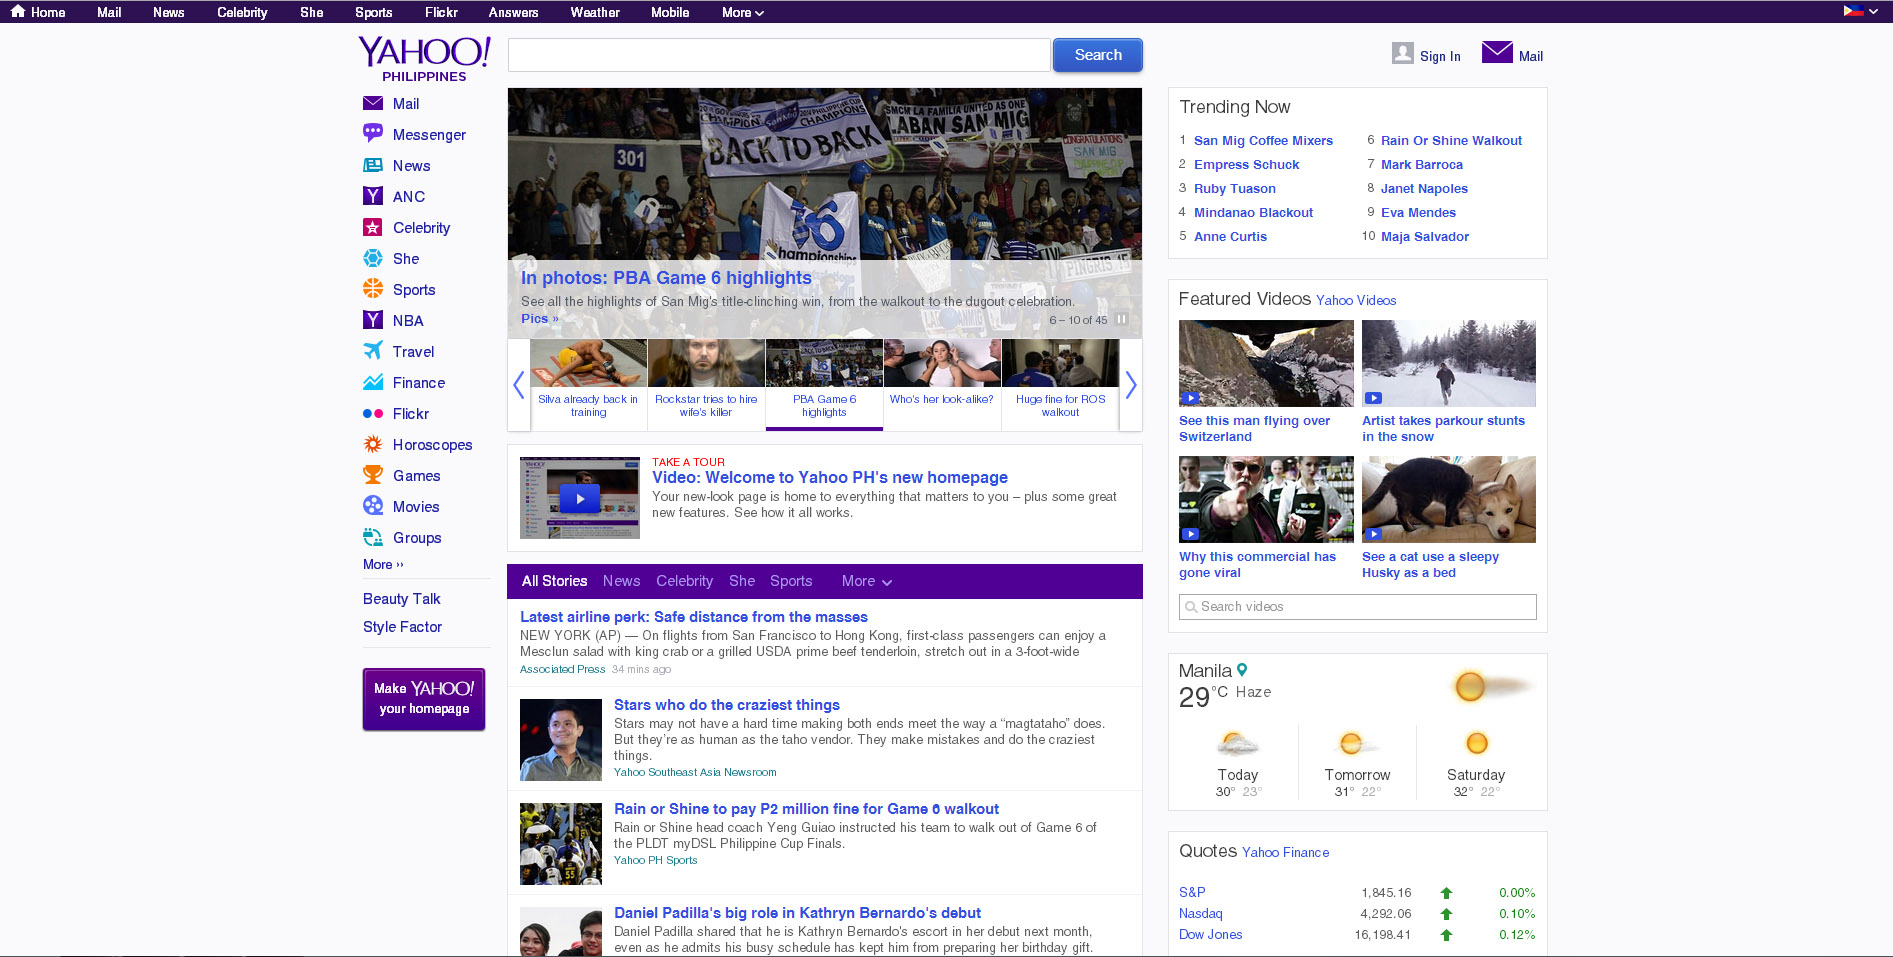 Yahoo philippines has just unveiled its brand new homepage which